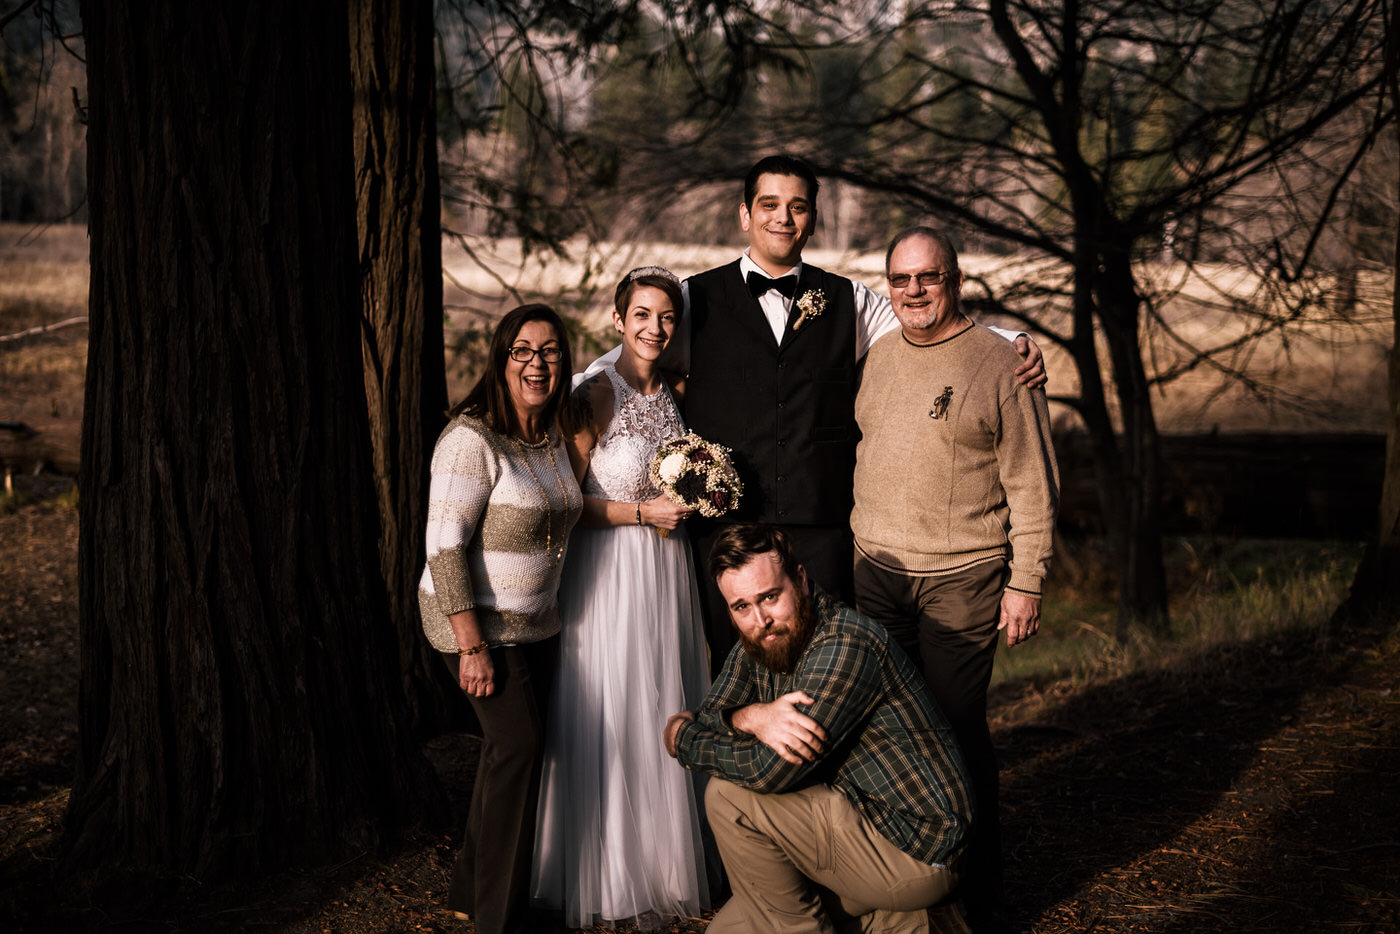 Getting my awkward posing on with a couple after their elopement in Yosemite.